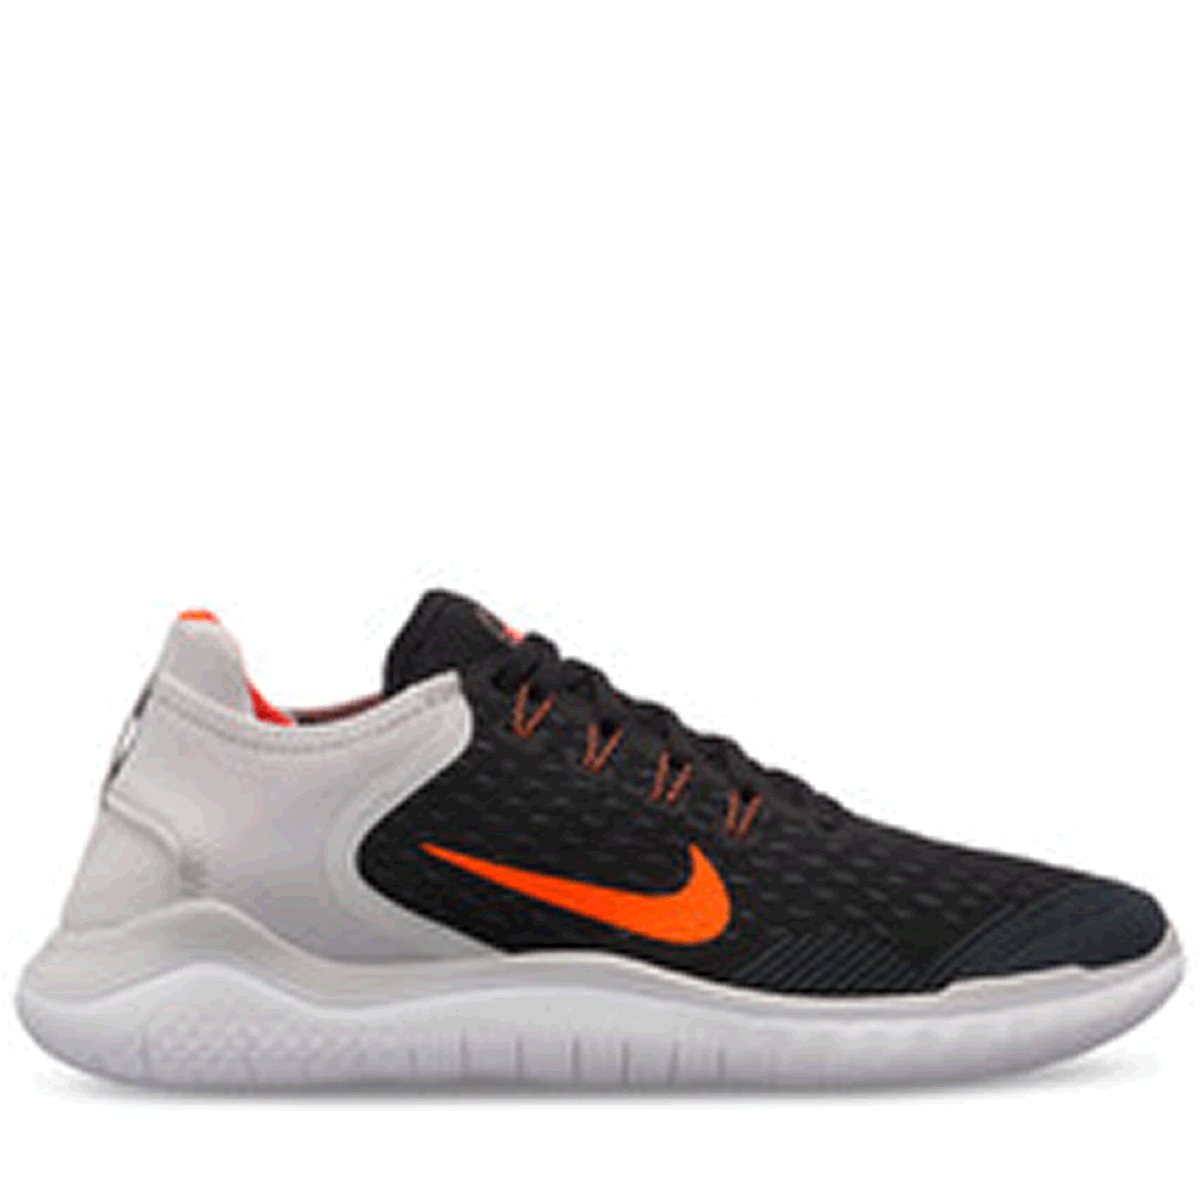 nike shoes exchange policy macy's insite connection employee